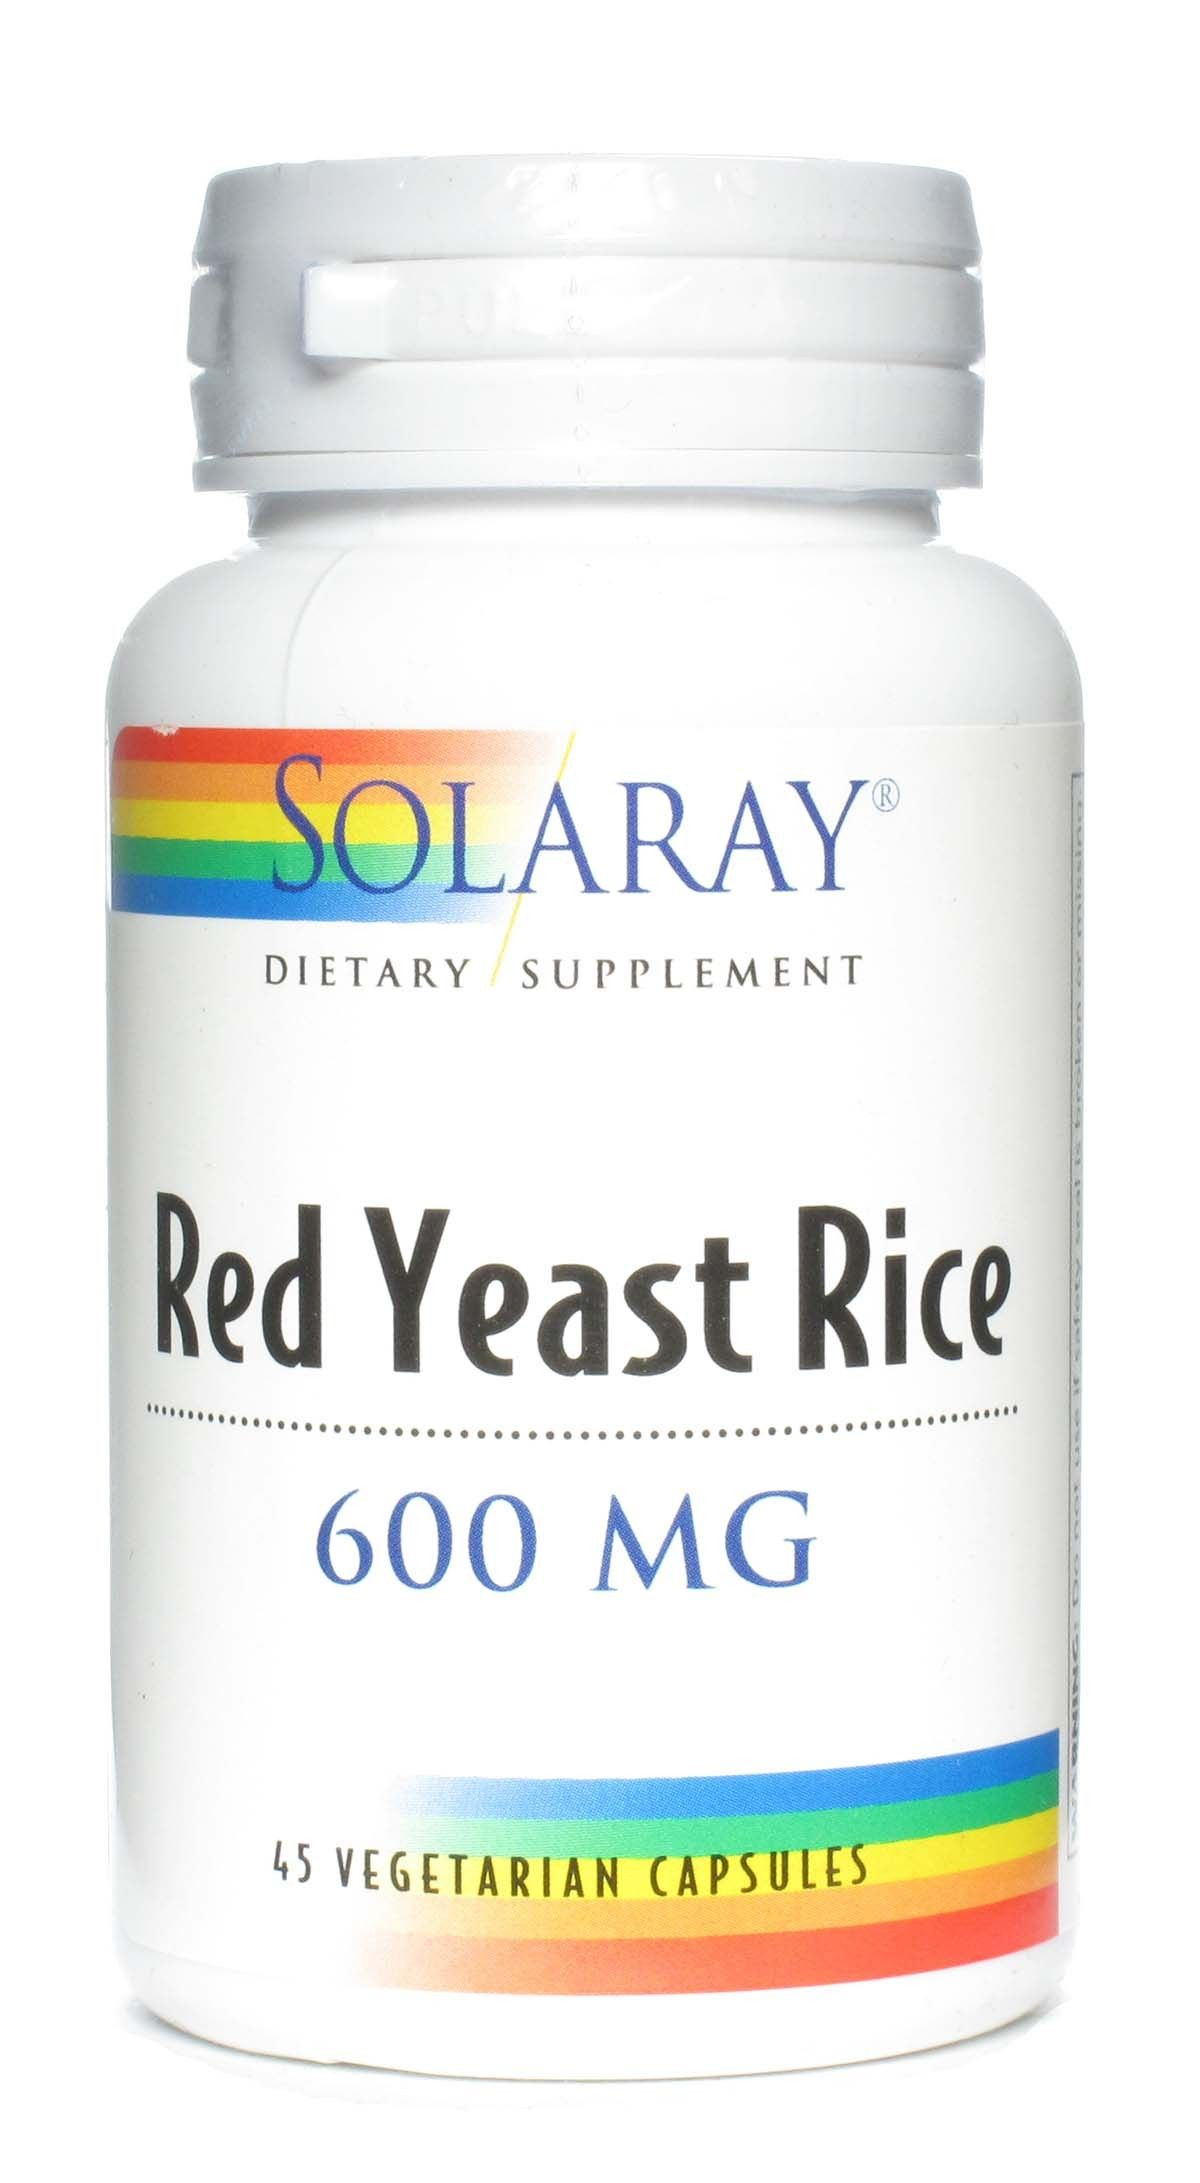 Dr Oz Cholesterol Lowering Supplements (With images